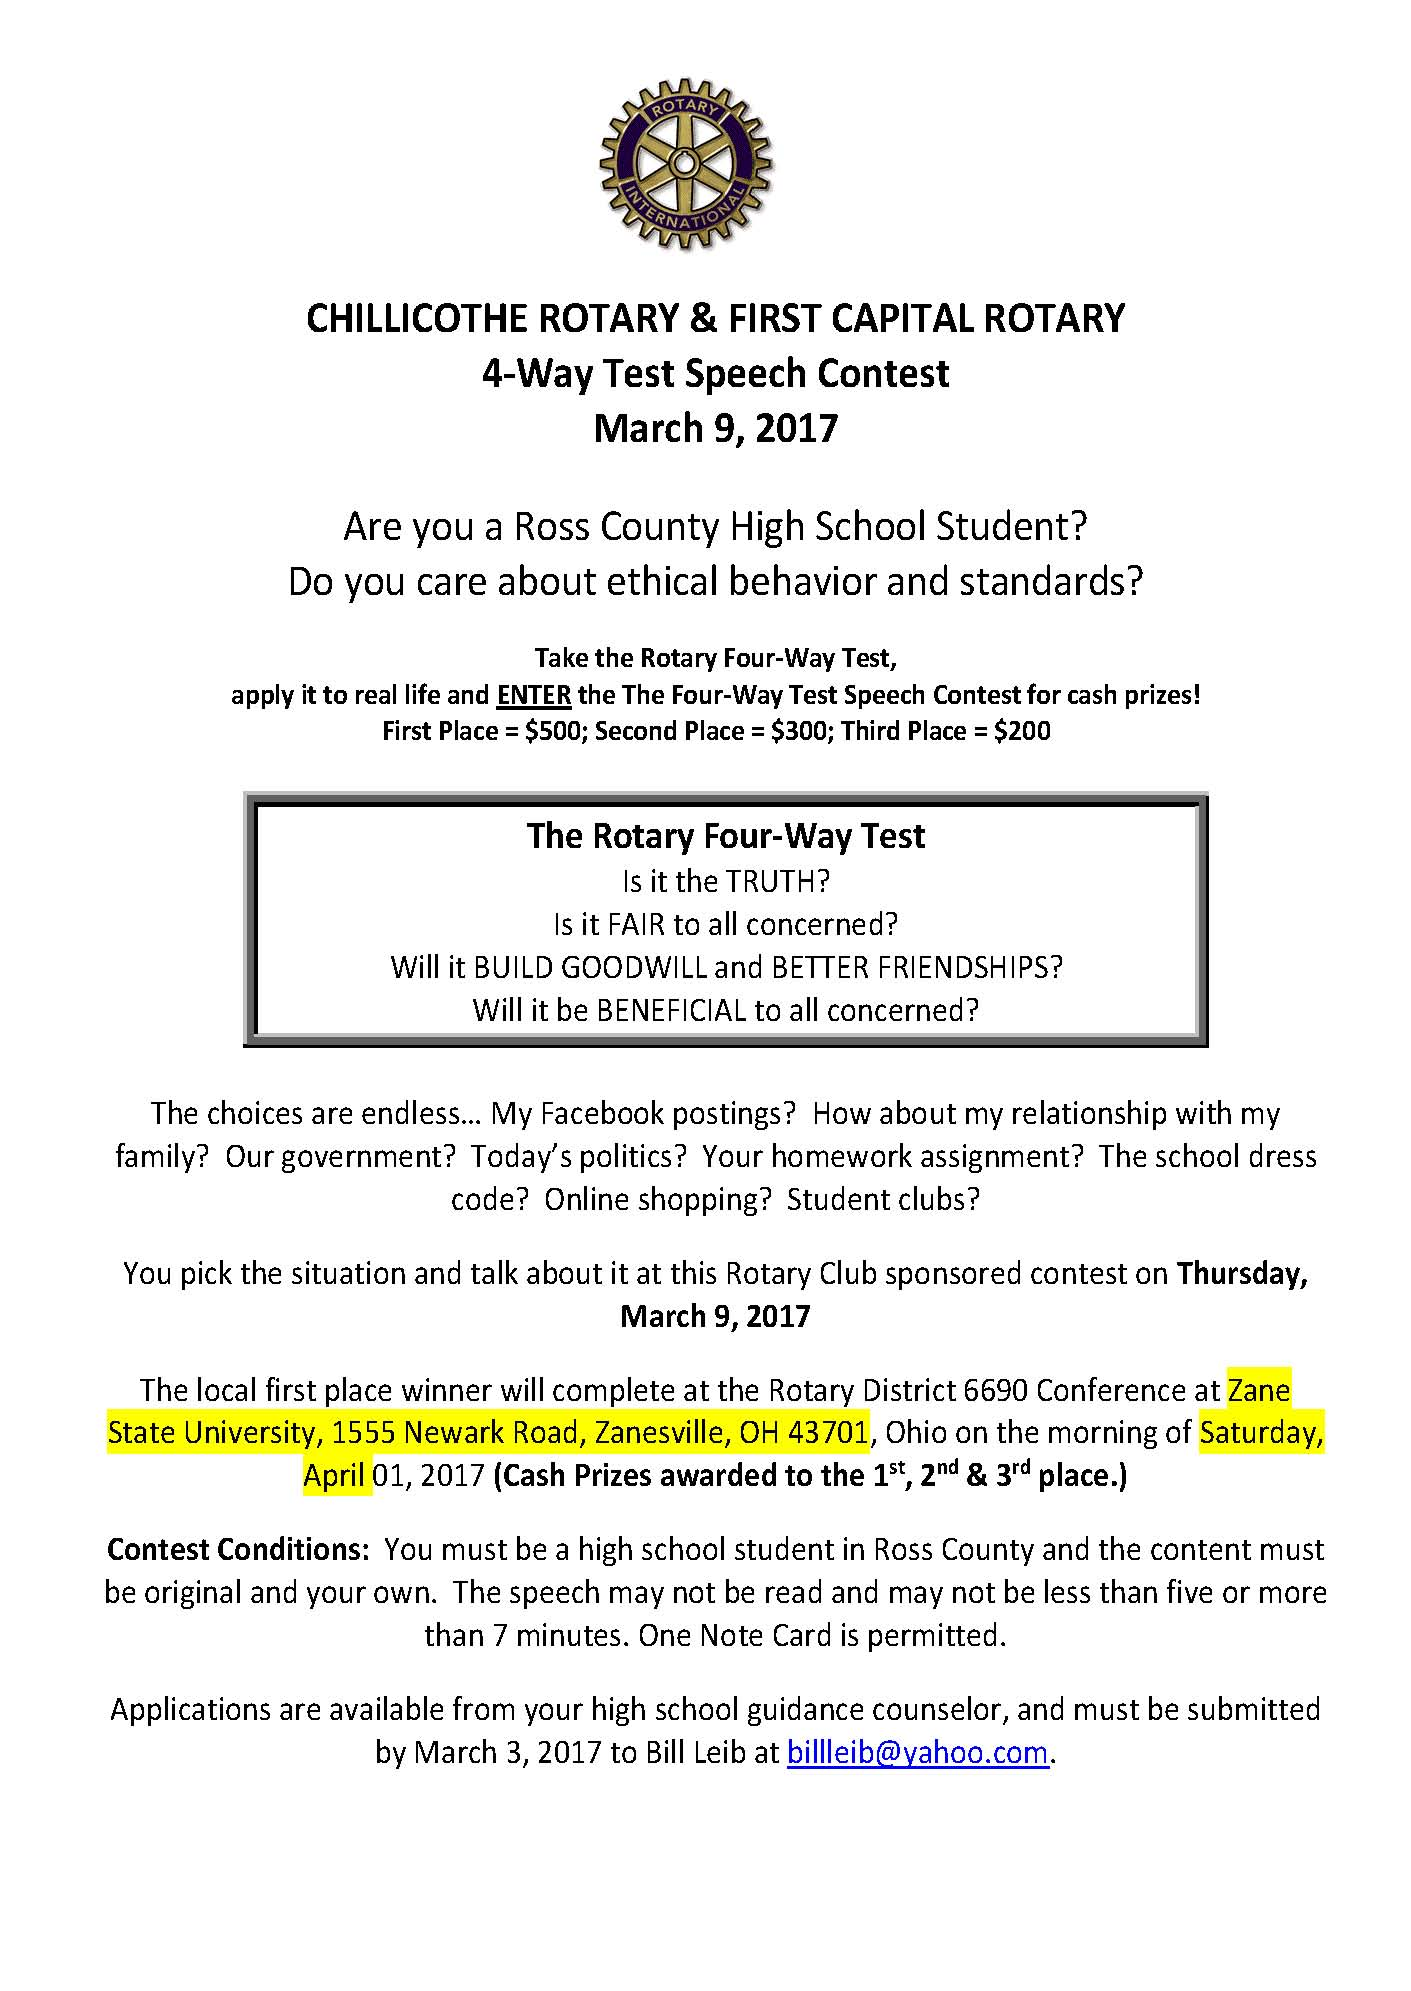 Compete in the Rotary 4 way Speech Contest - Chillicothe High School